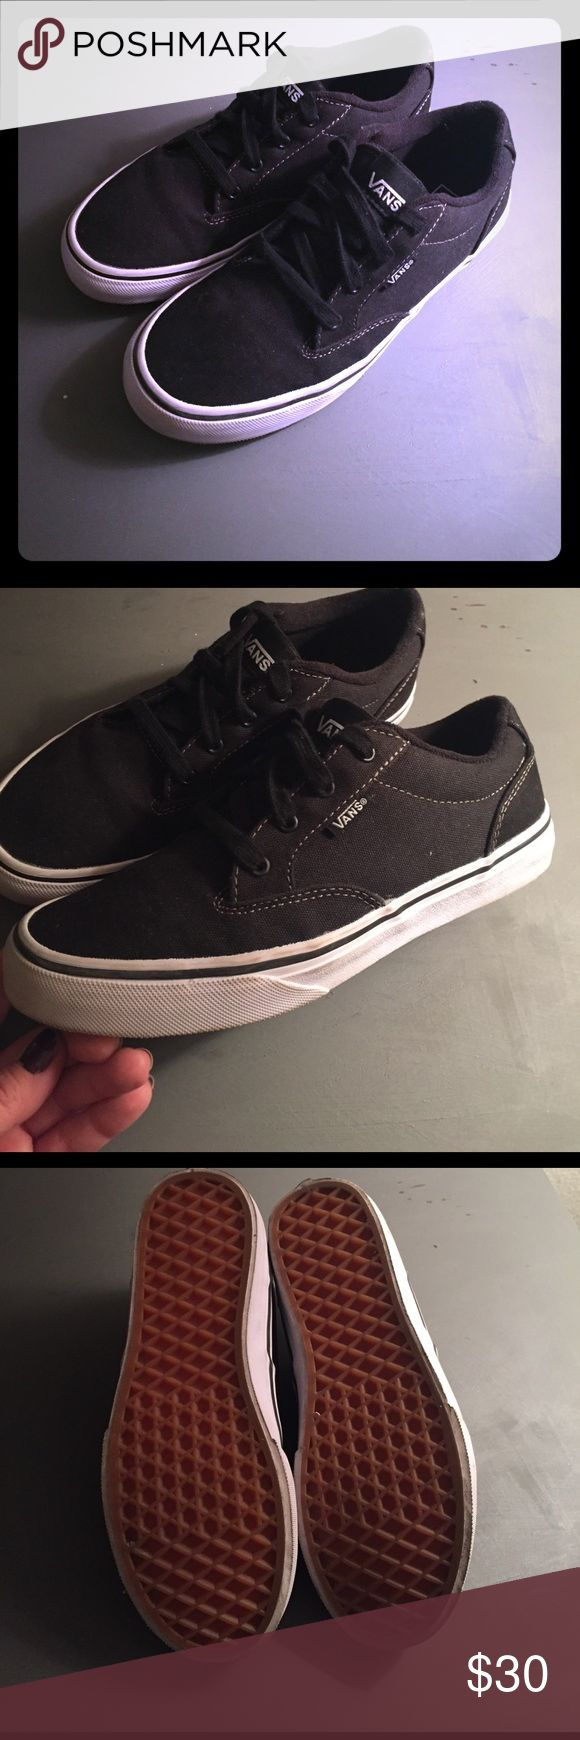 Vans Winston Boy's Size 4.5M-Black Like New Boy's Vans Winston, size 4.5M, worn only once for family photos. Vans Shoes Sneakers